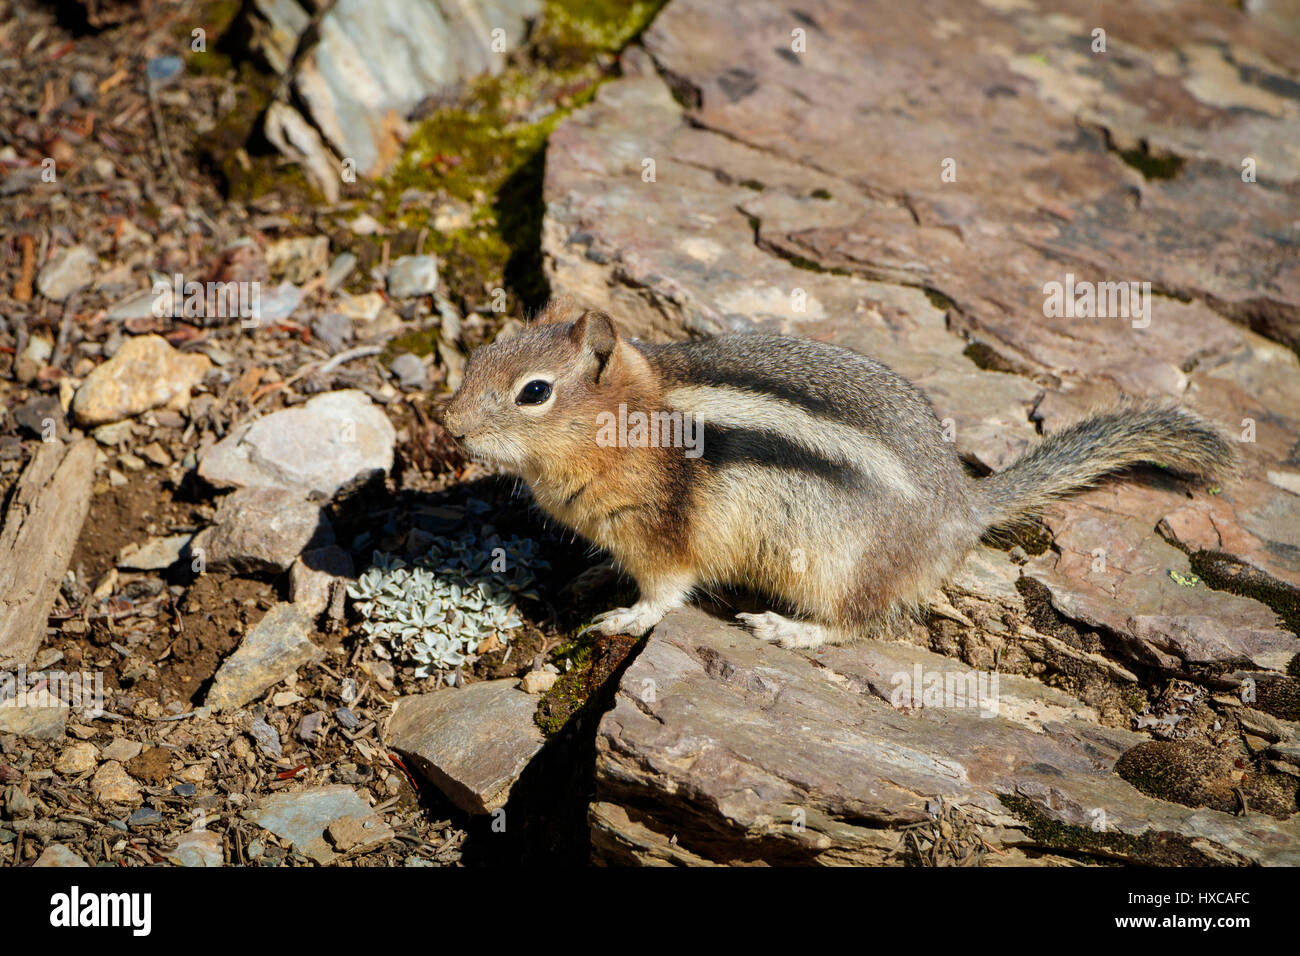 A chipmunk, family  Sciuridae, on the rocks of Jasper National Park, Canada. - Stock Image